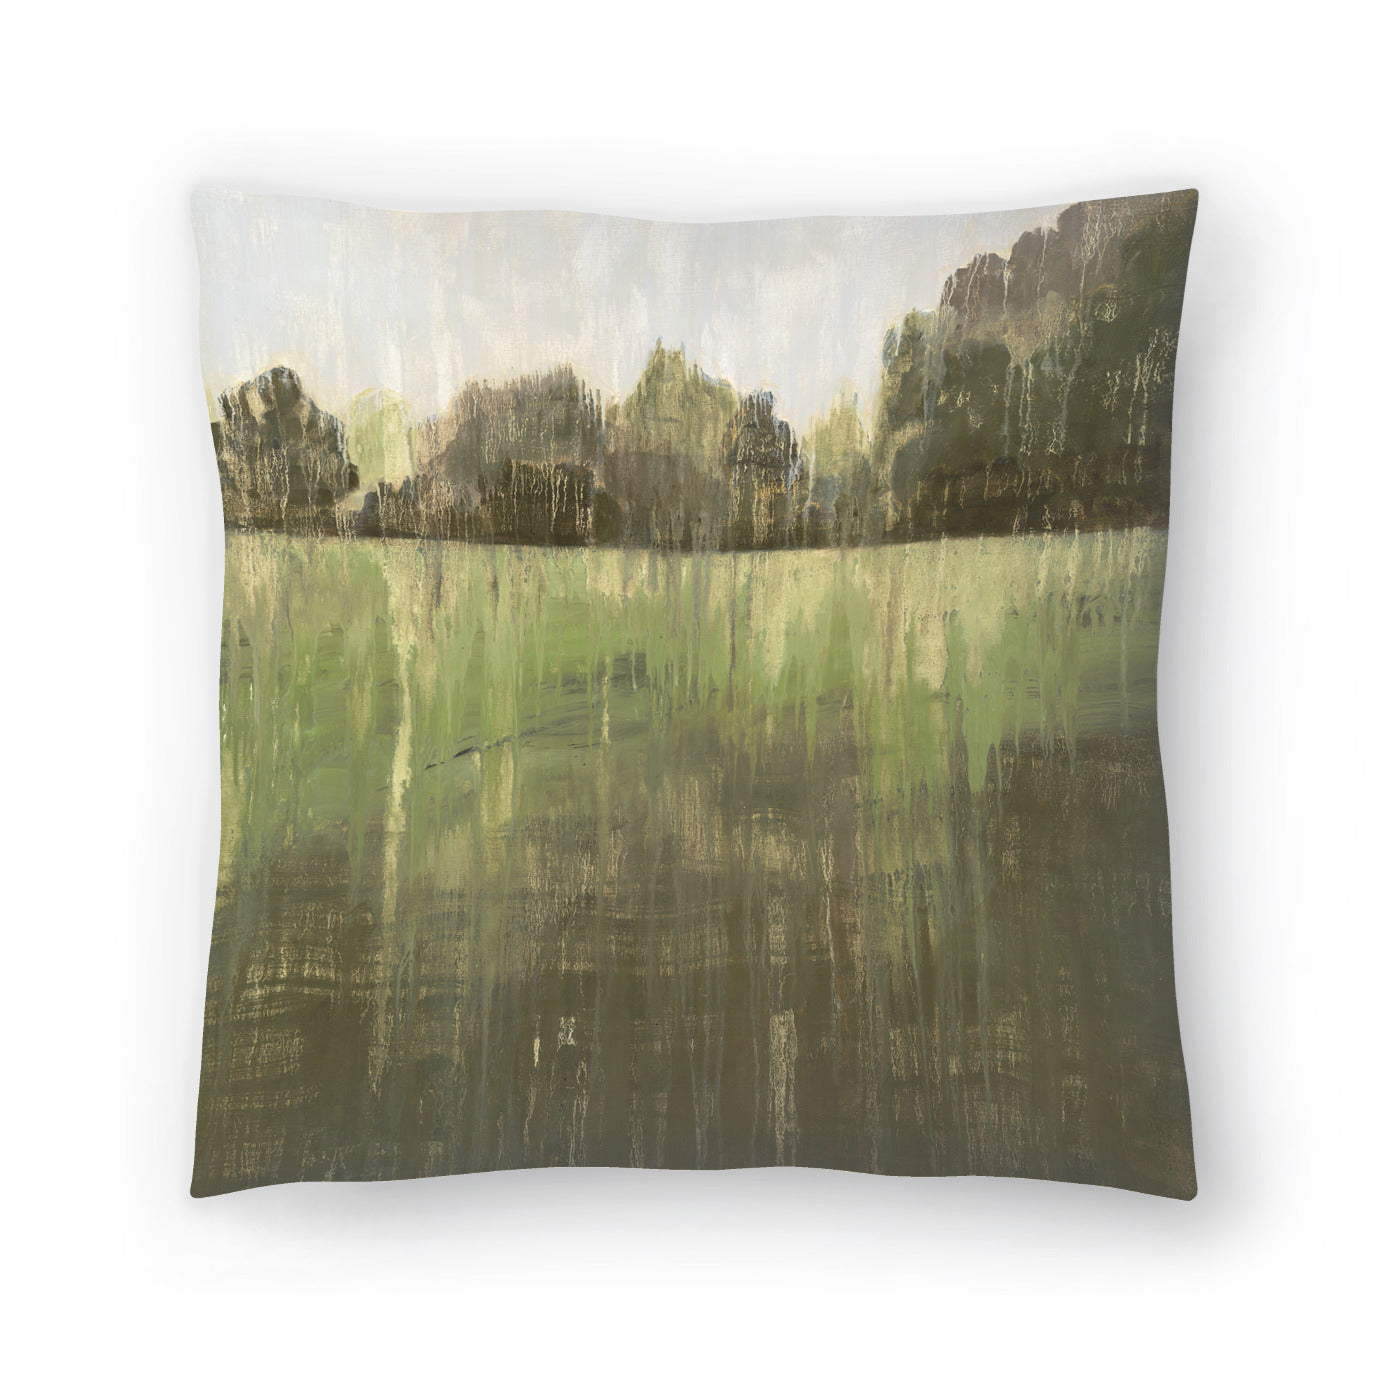 Green Field Ii by PI Creative Art Decorative Pillow - Decorative Pillow - Americanflat